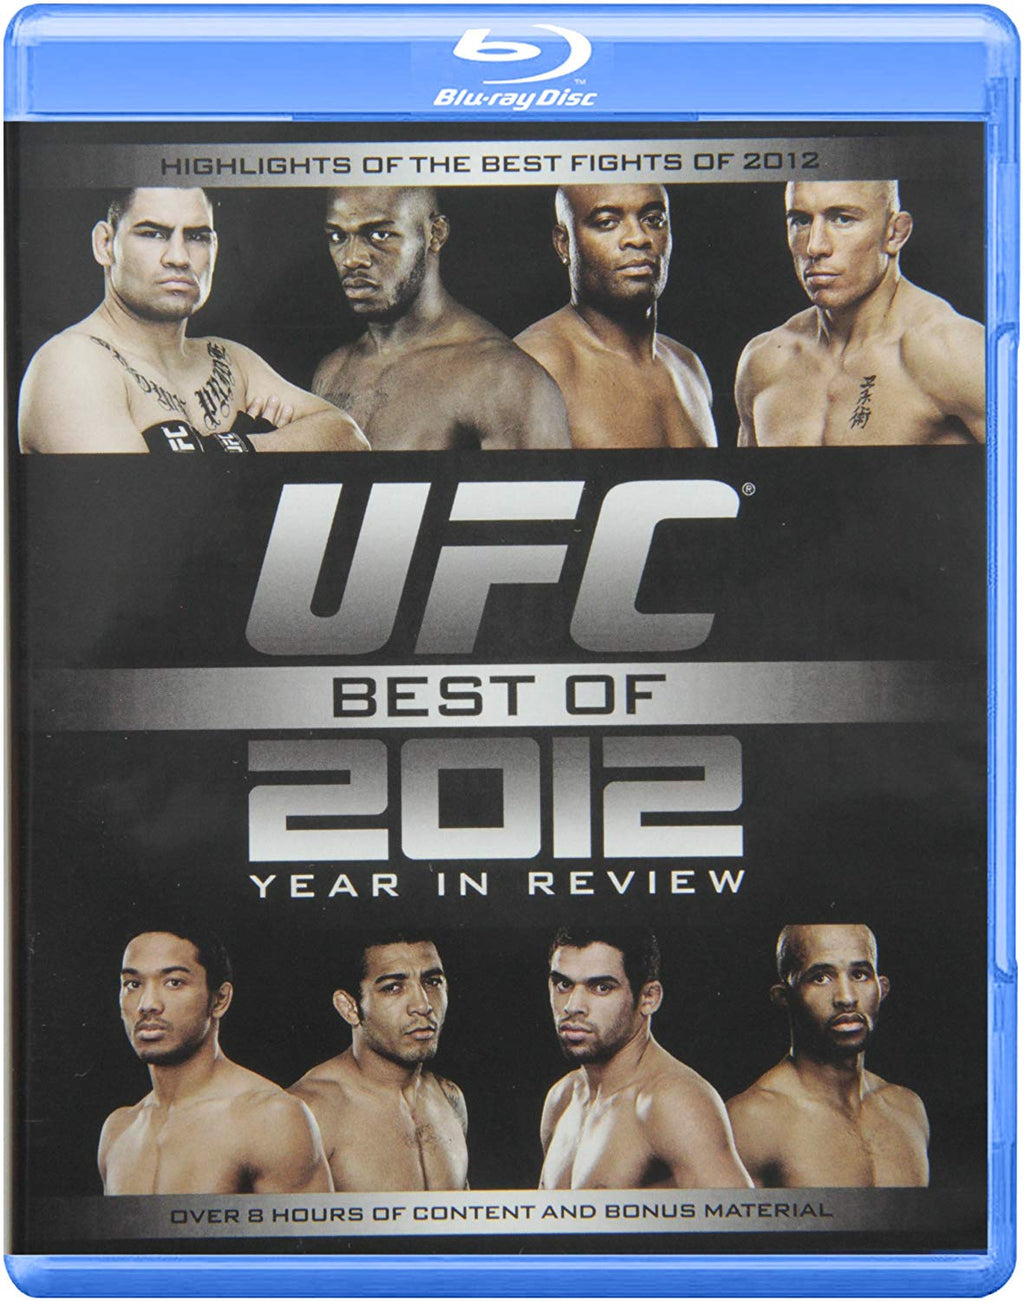 UFC: Best of 2012 - Year in Review Blu-ray